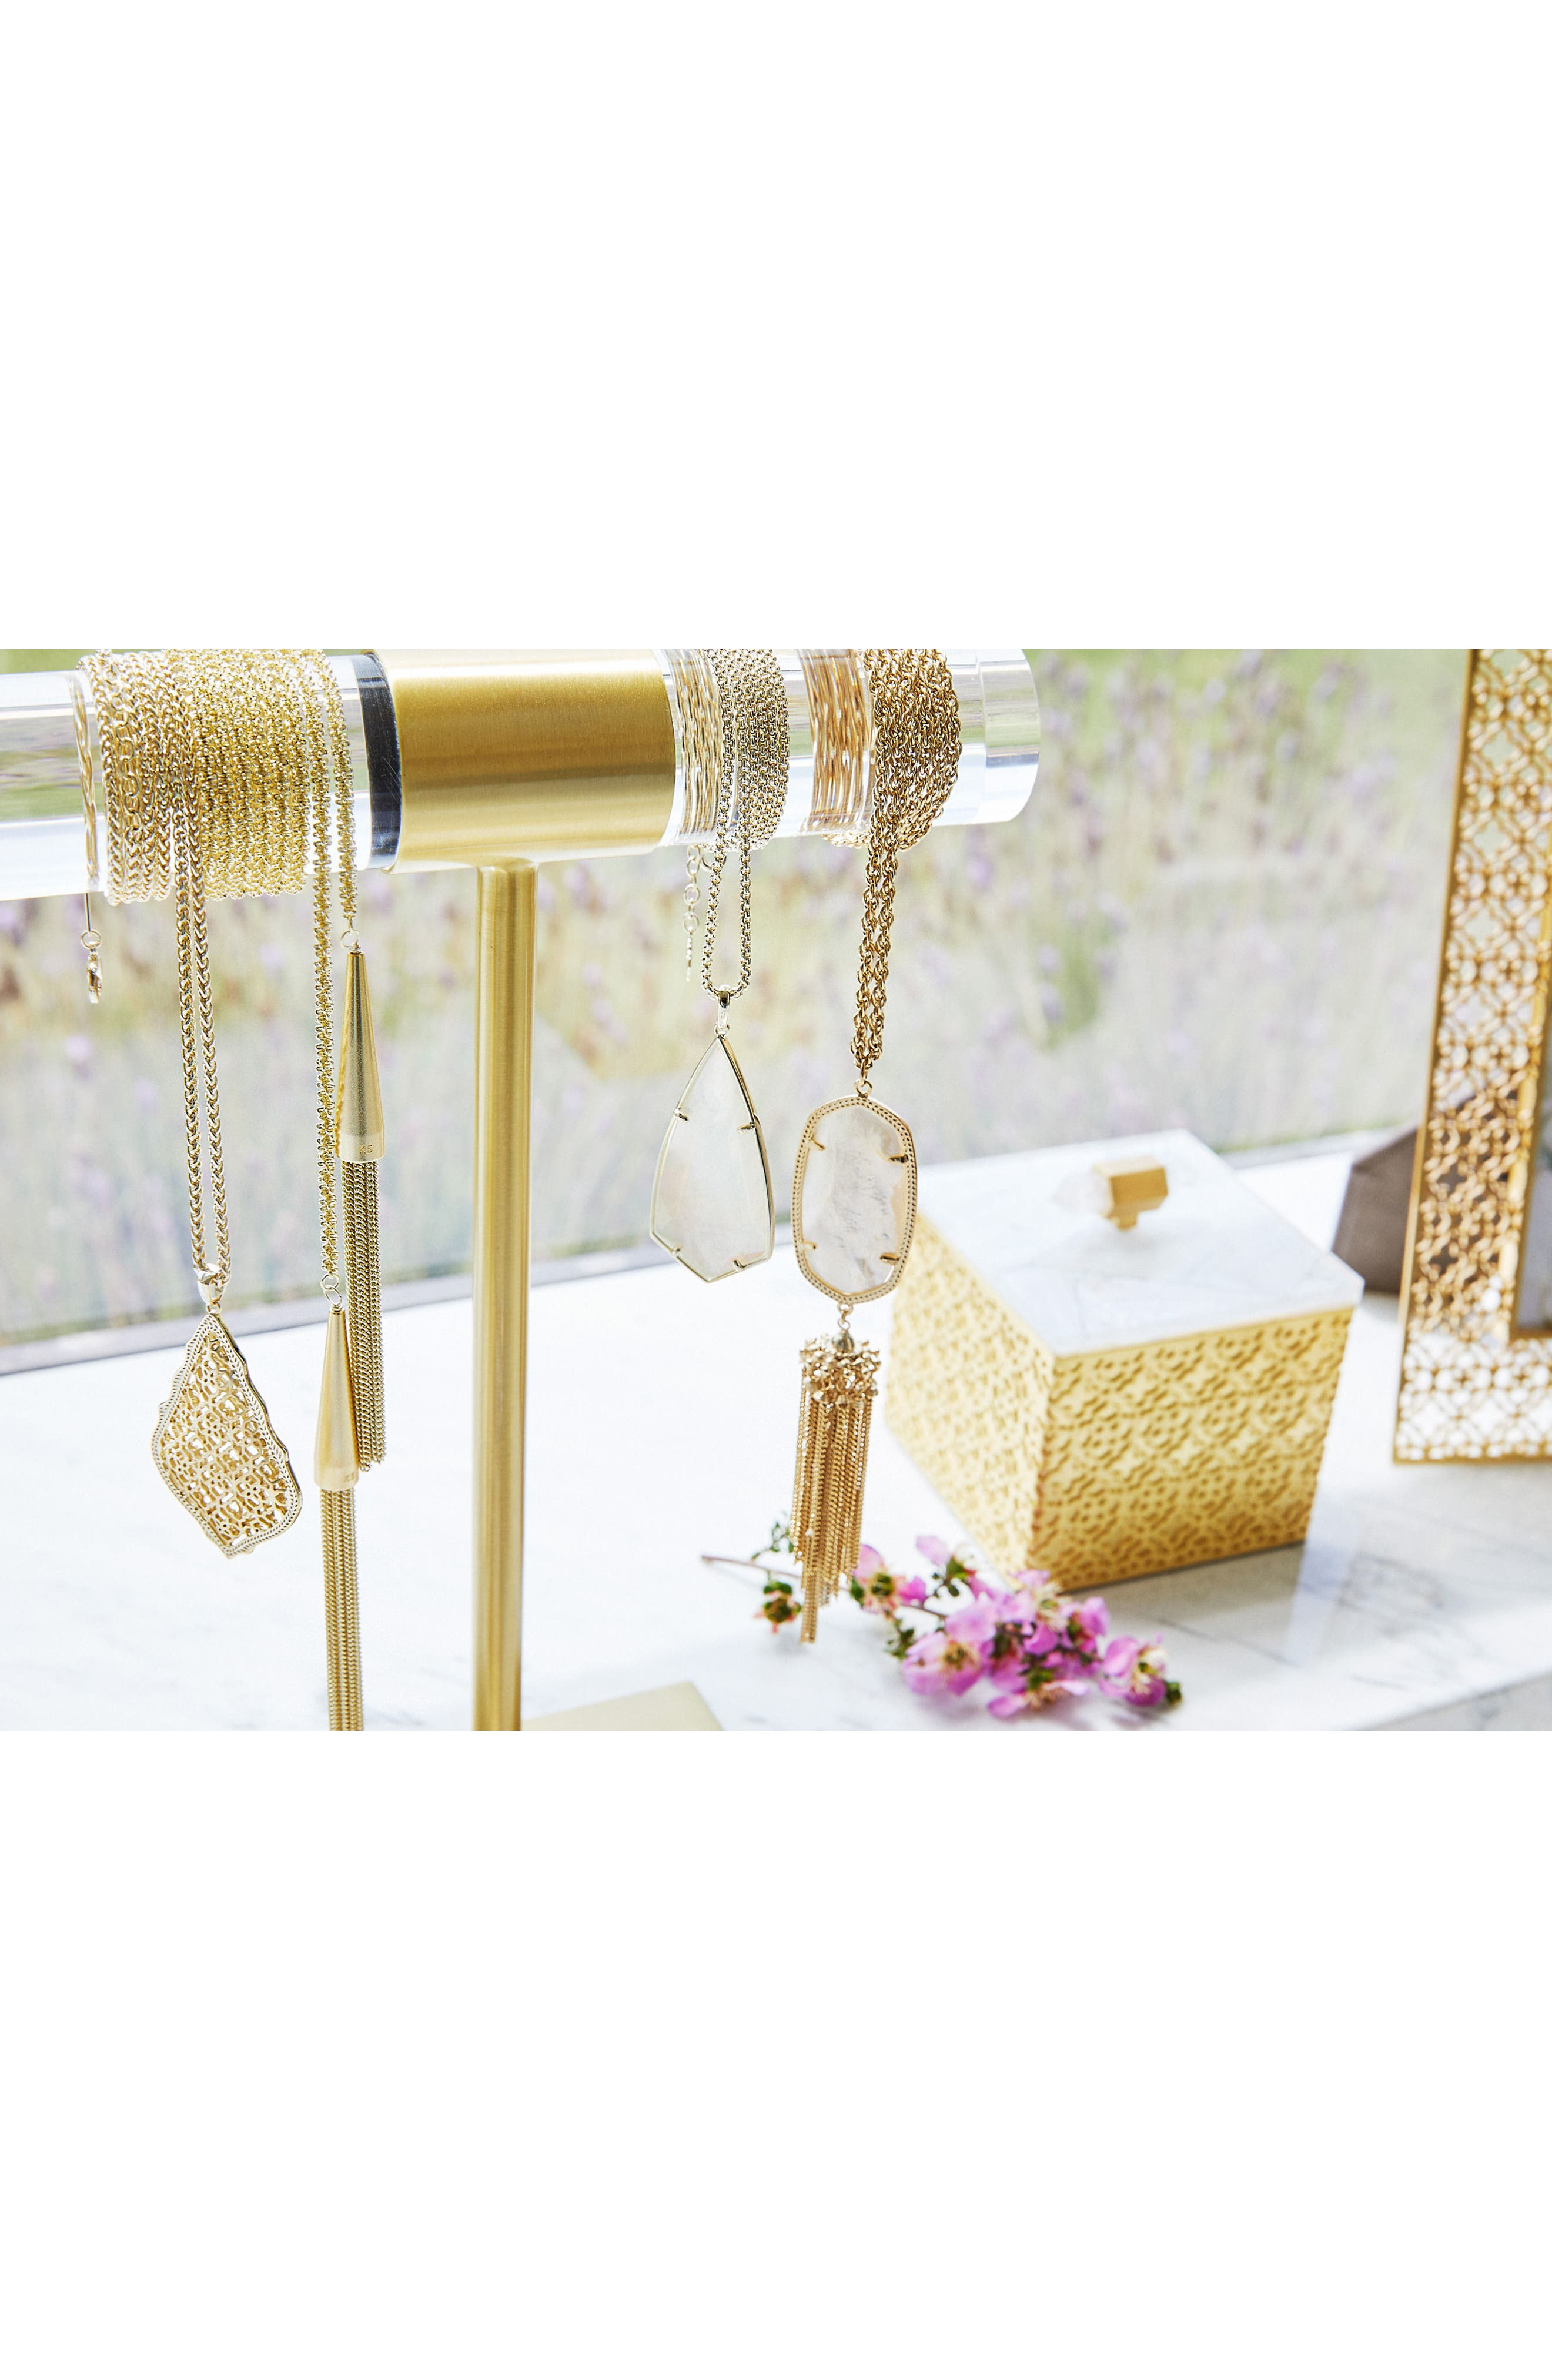 Jewelry Stand,                             Alternate thumbnail 2, color,                             Antique Brass